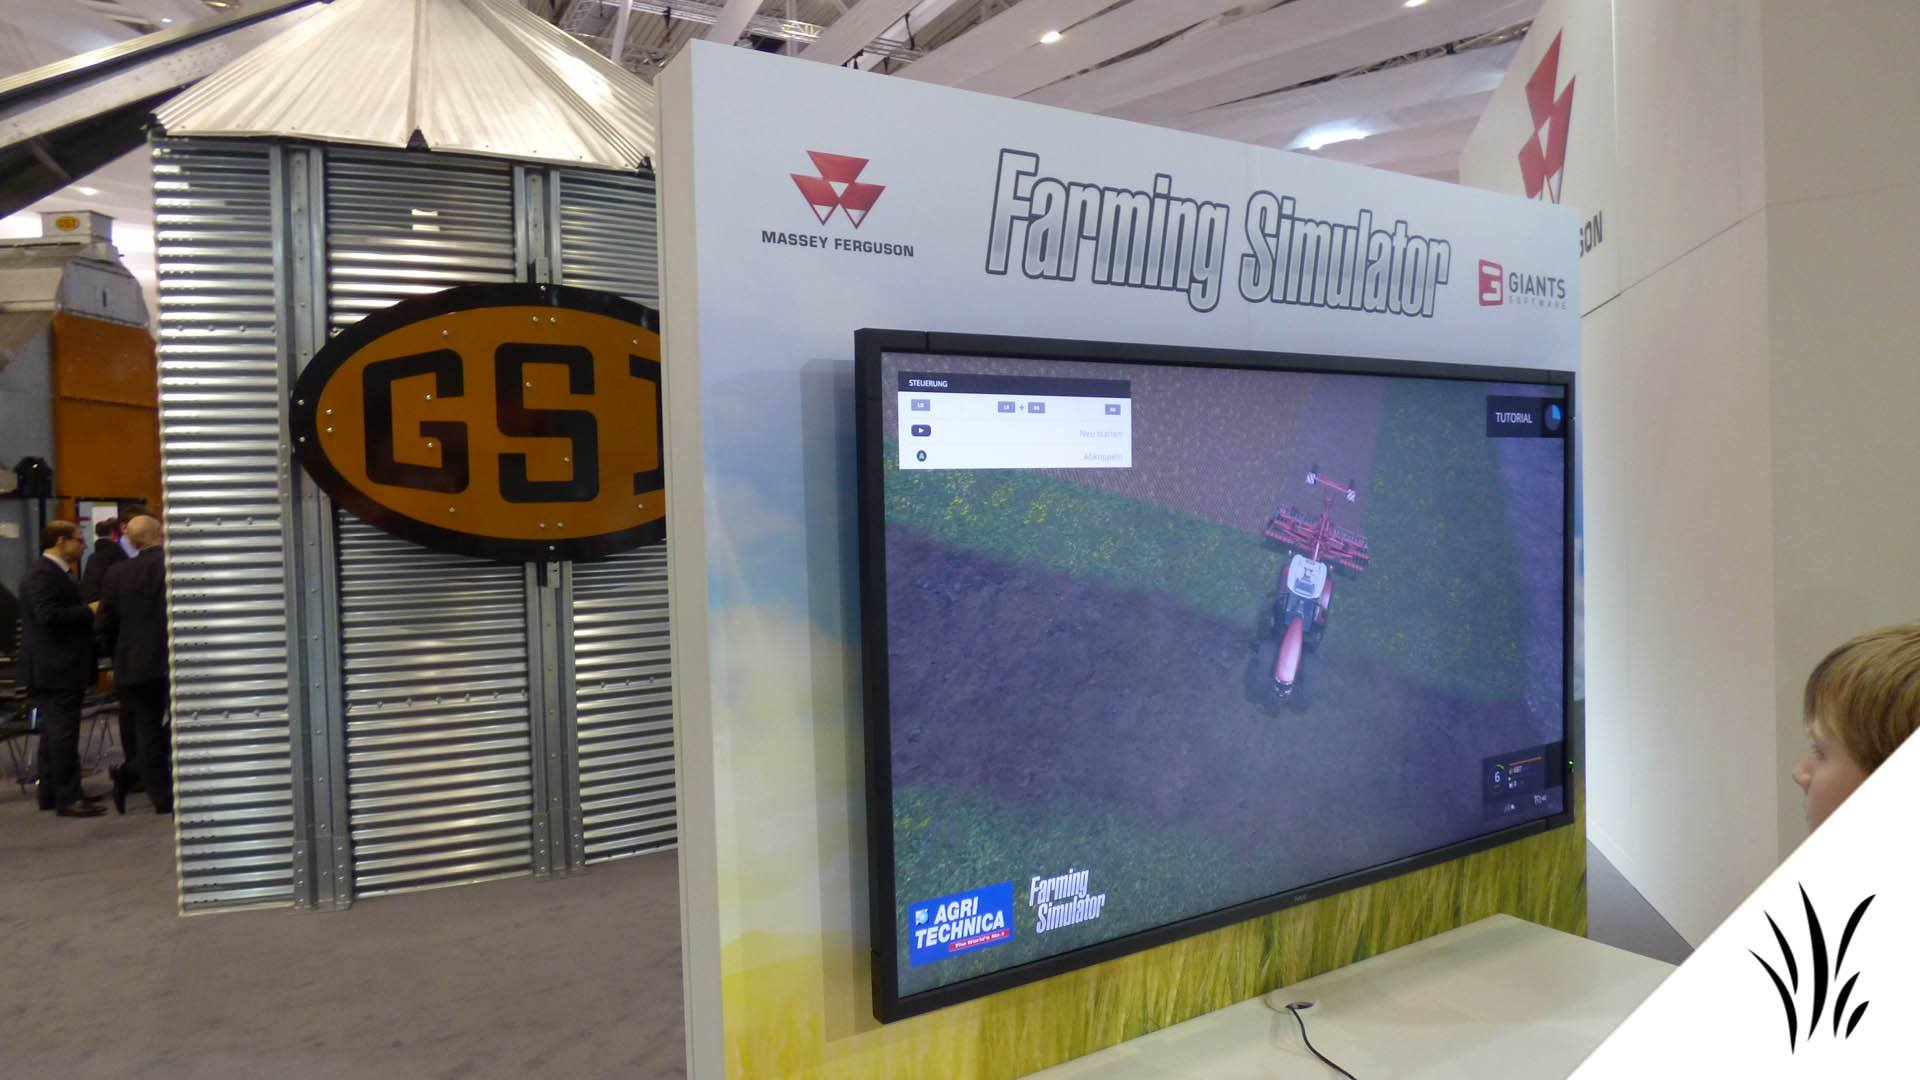 Some-new-photos-from-Farming-Simulator-2017-1